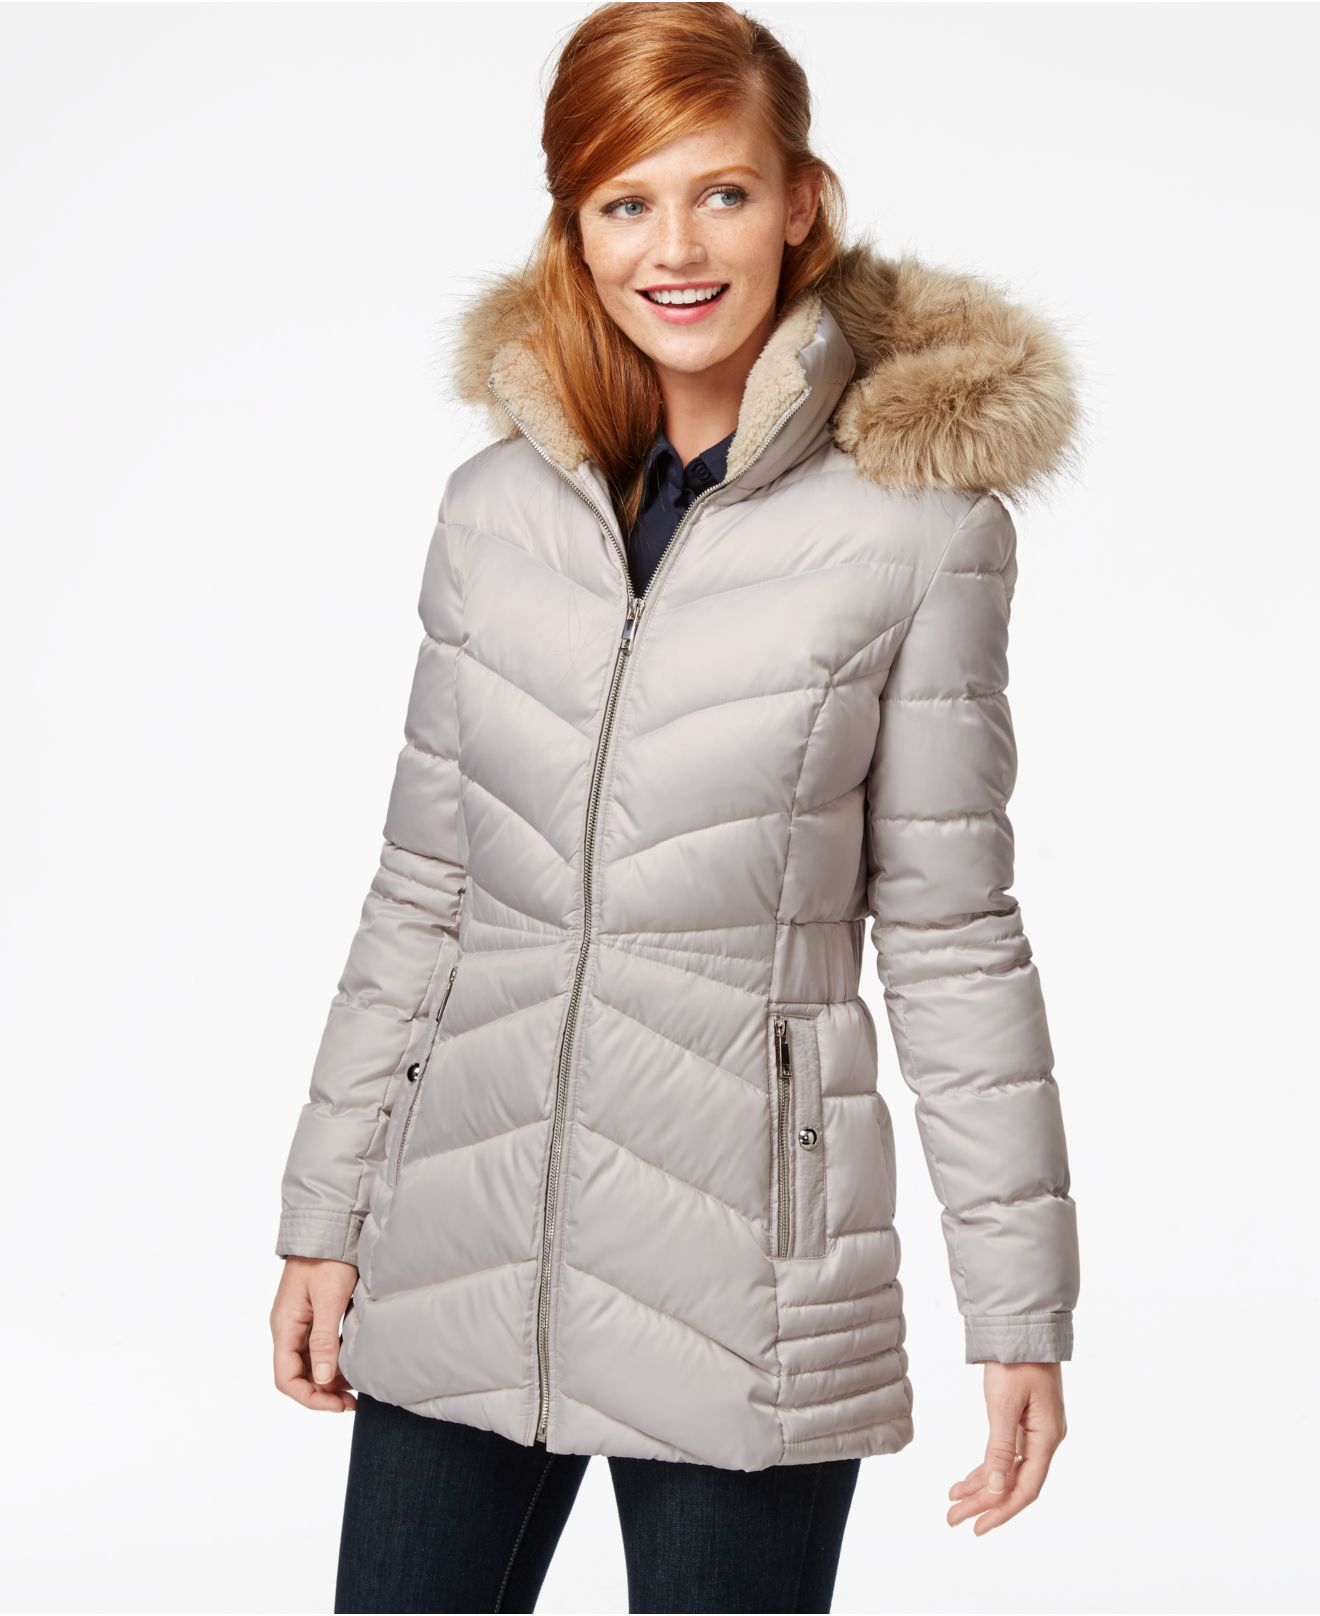 Find Faux Fur Hooded Jackets at ShopStyle. Shop the latest collection of Faux Fur Hooded Jackets from the most popular stores - all in one place.